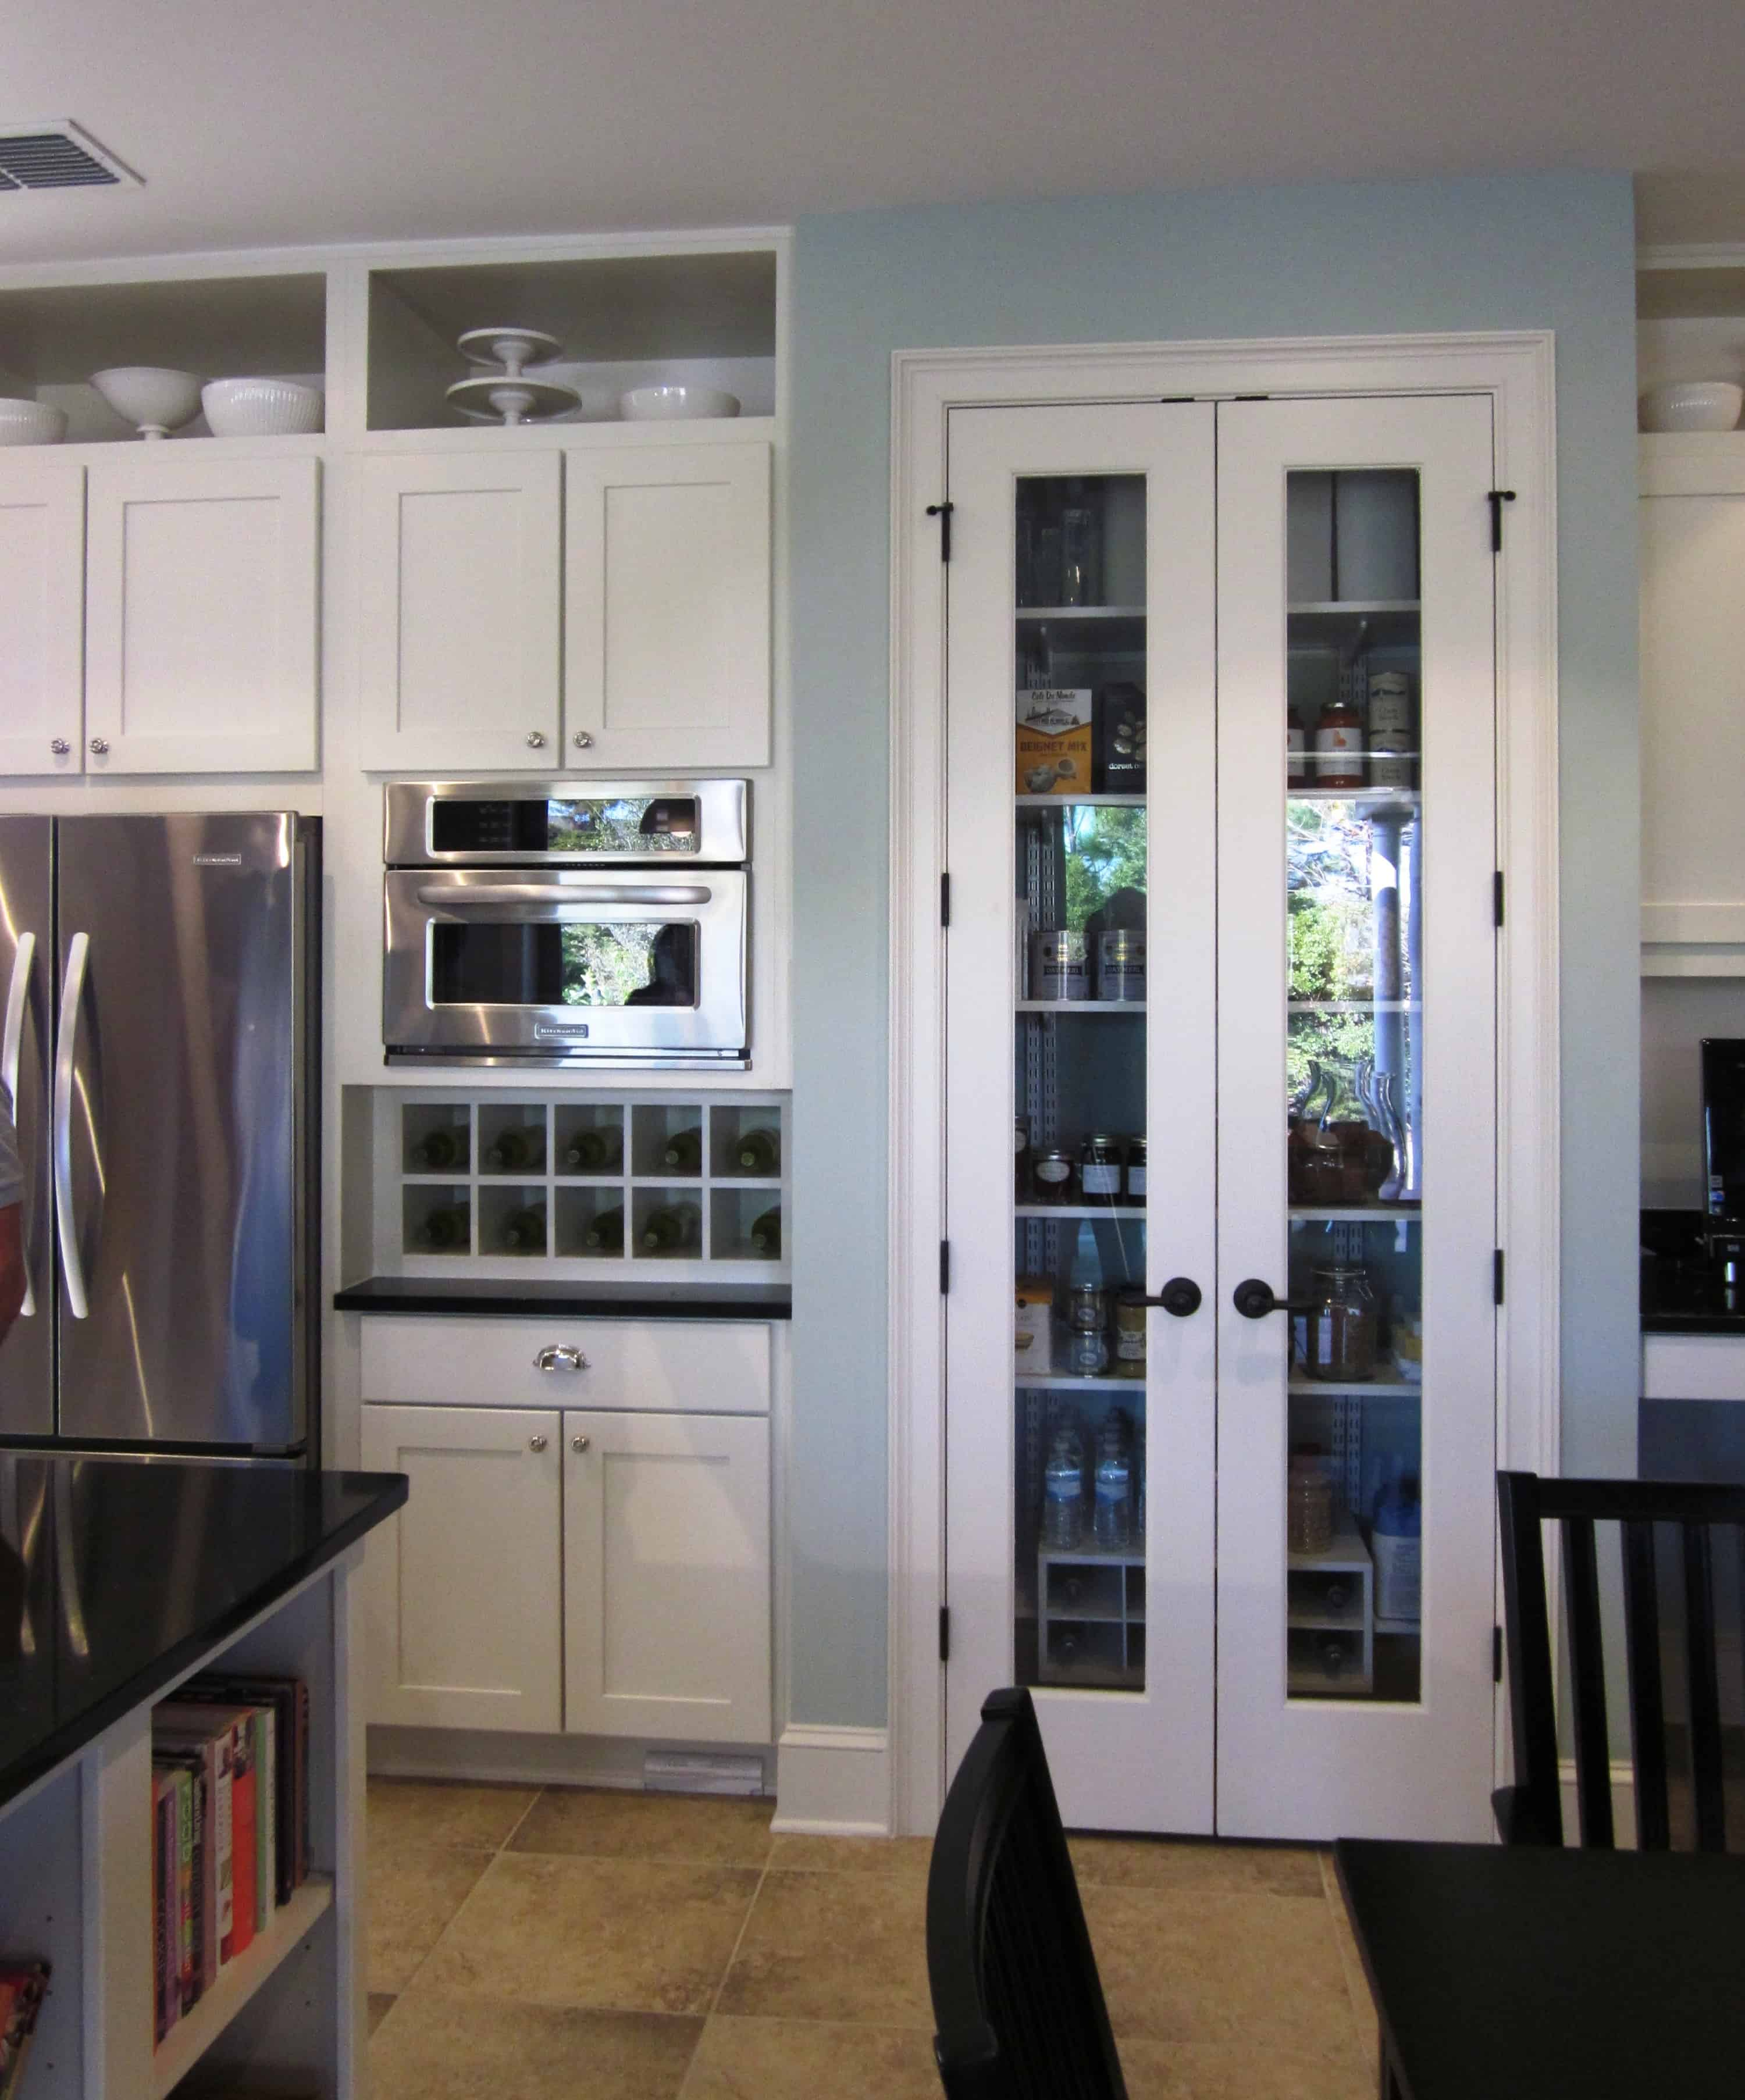 french doors as pary of the pantry